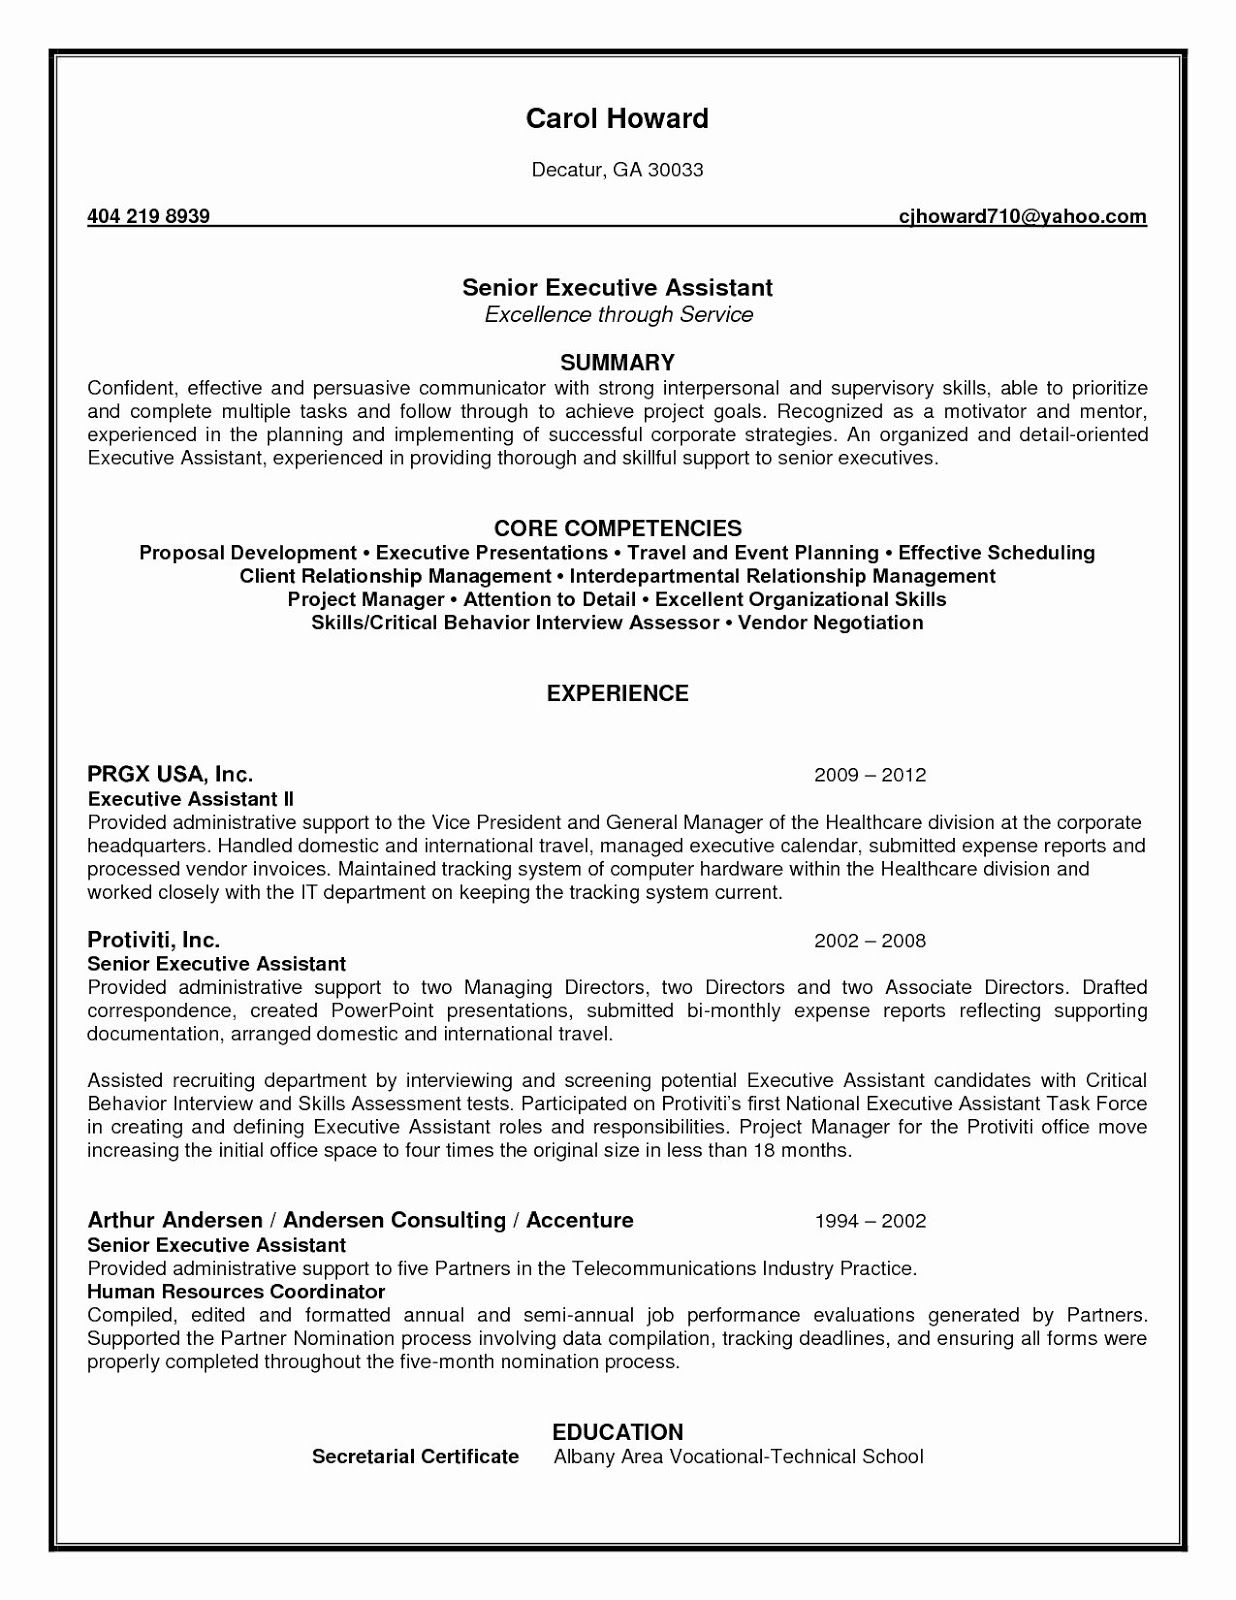 Administrative assistant resume objective 2019 2020